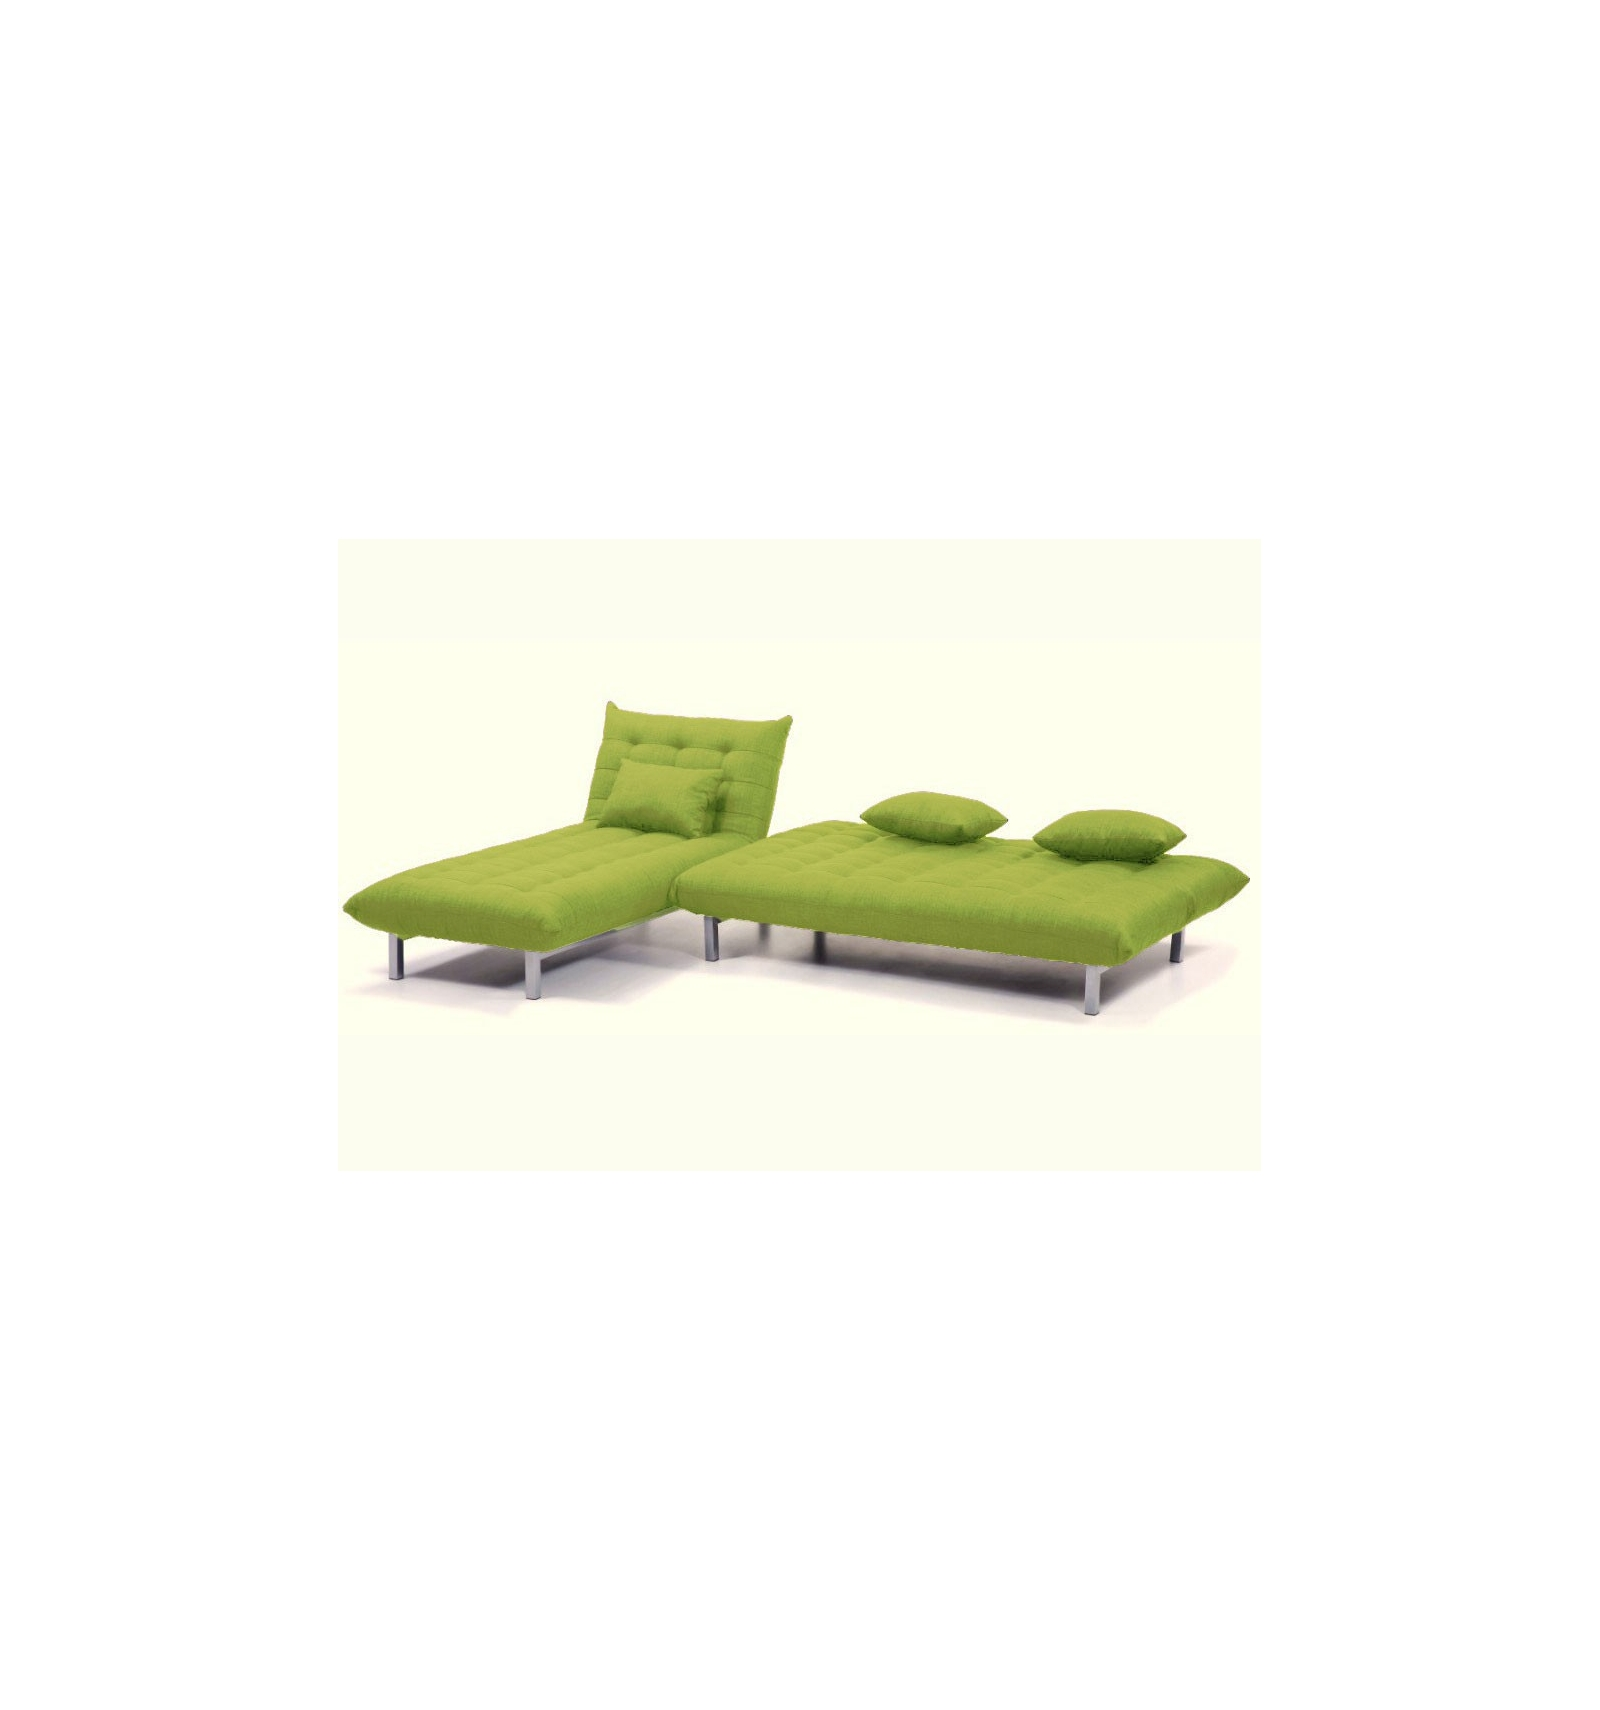 Sofa cama chaise longue peninsula for Sofas chaise longue cama